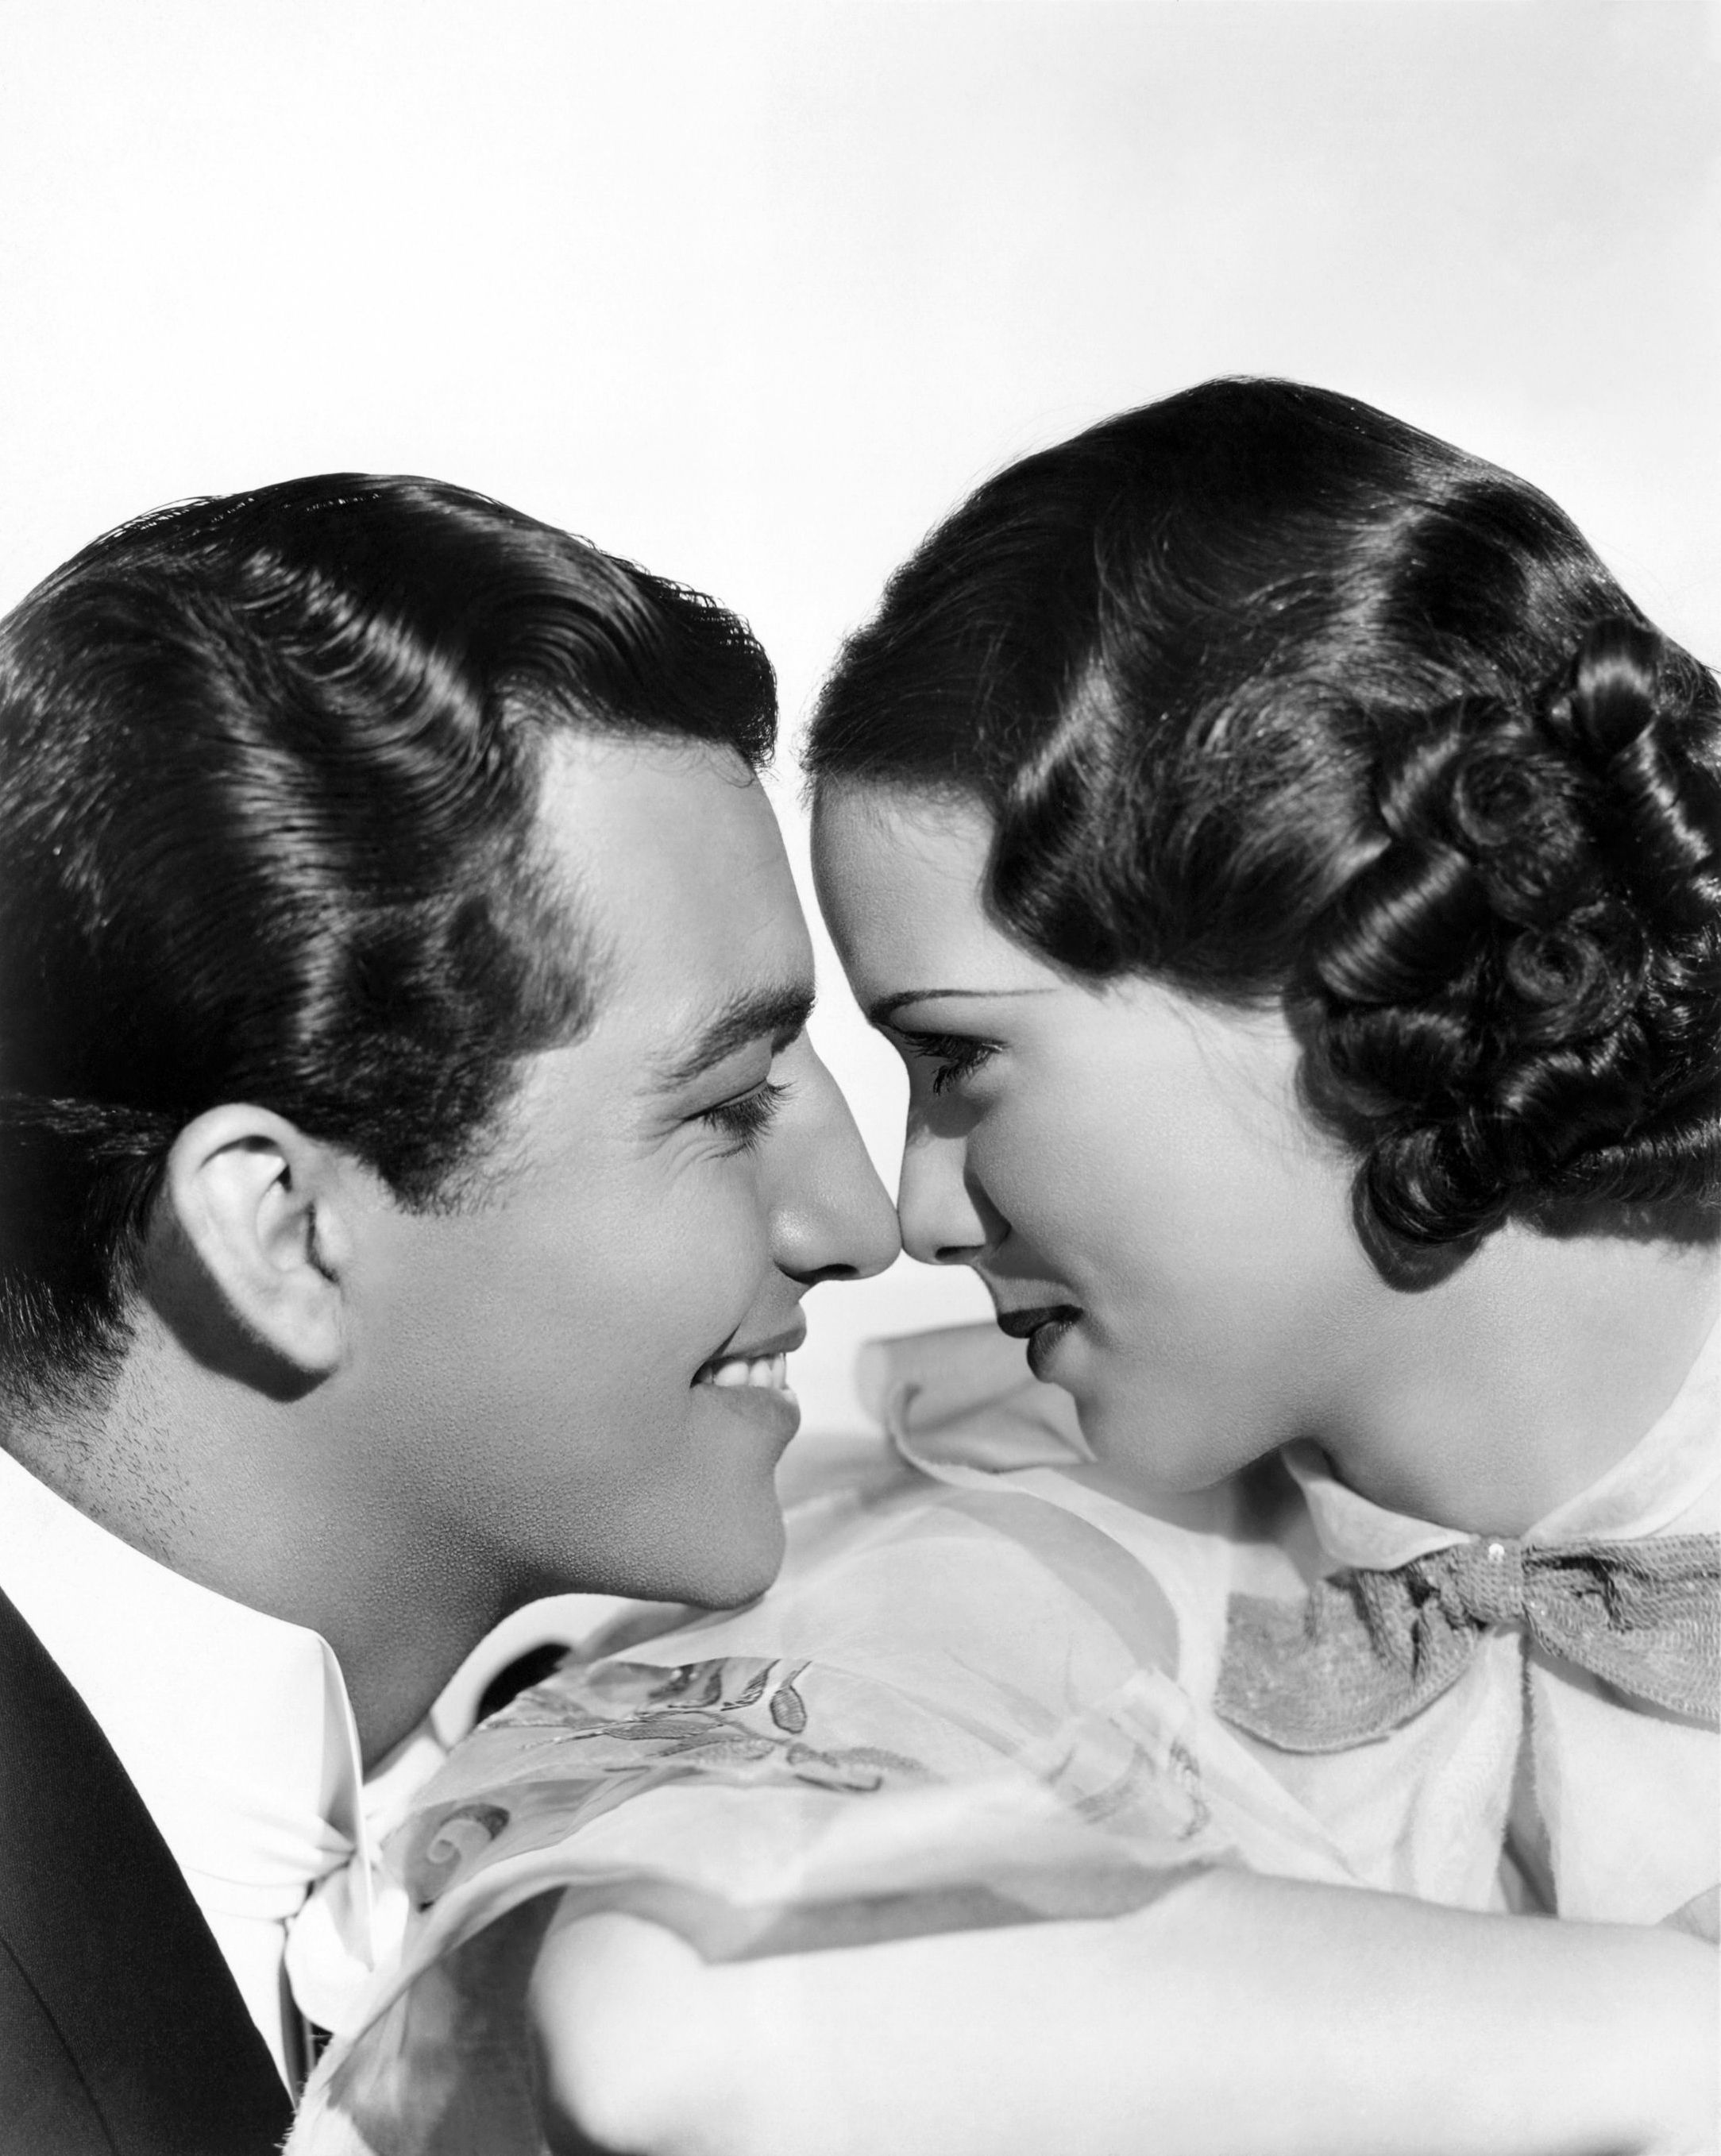 Robert Taylor & Eleanor Powell